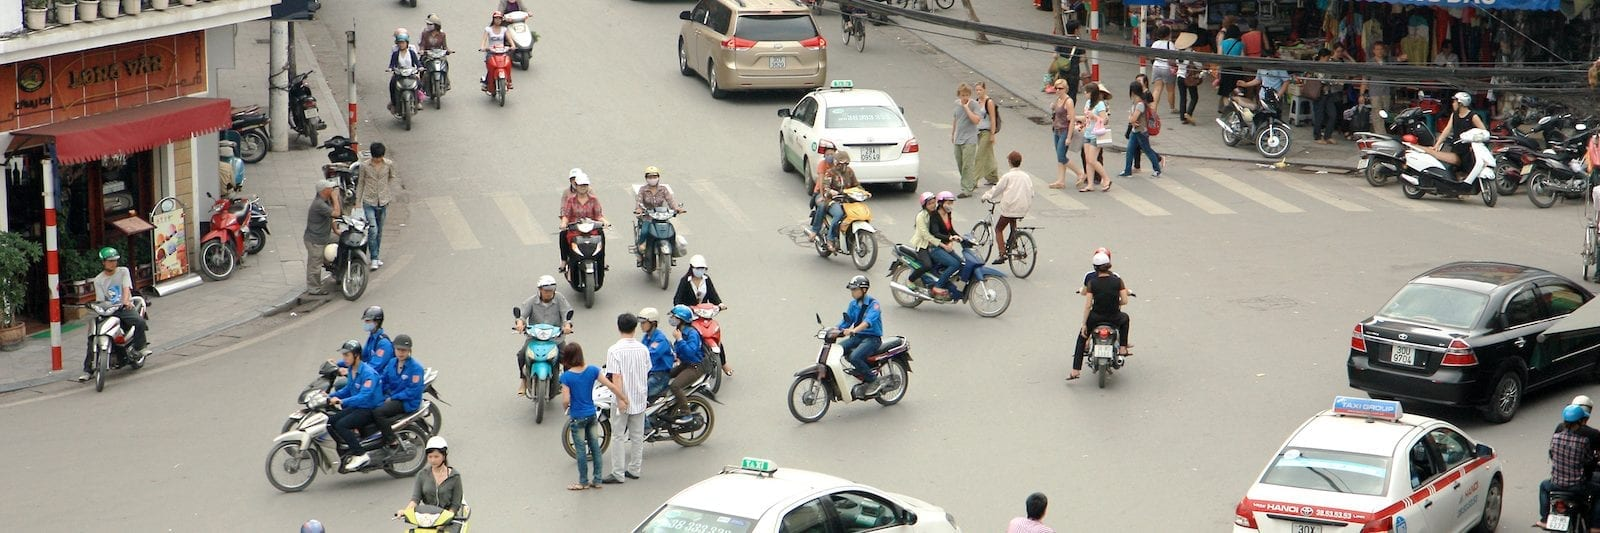 Hanoi Vietnam April Traffic Motorbikes